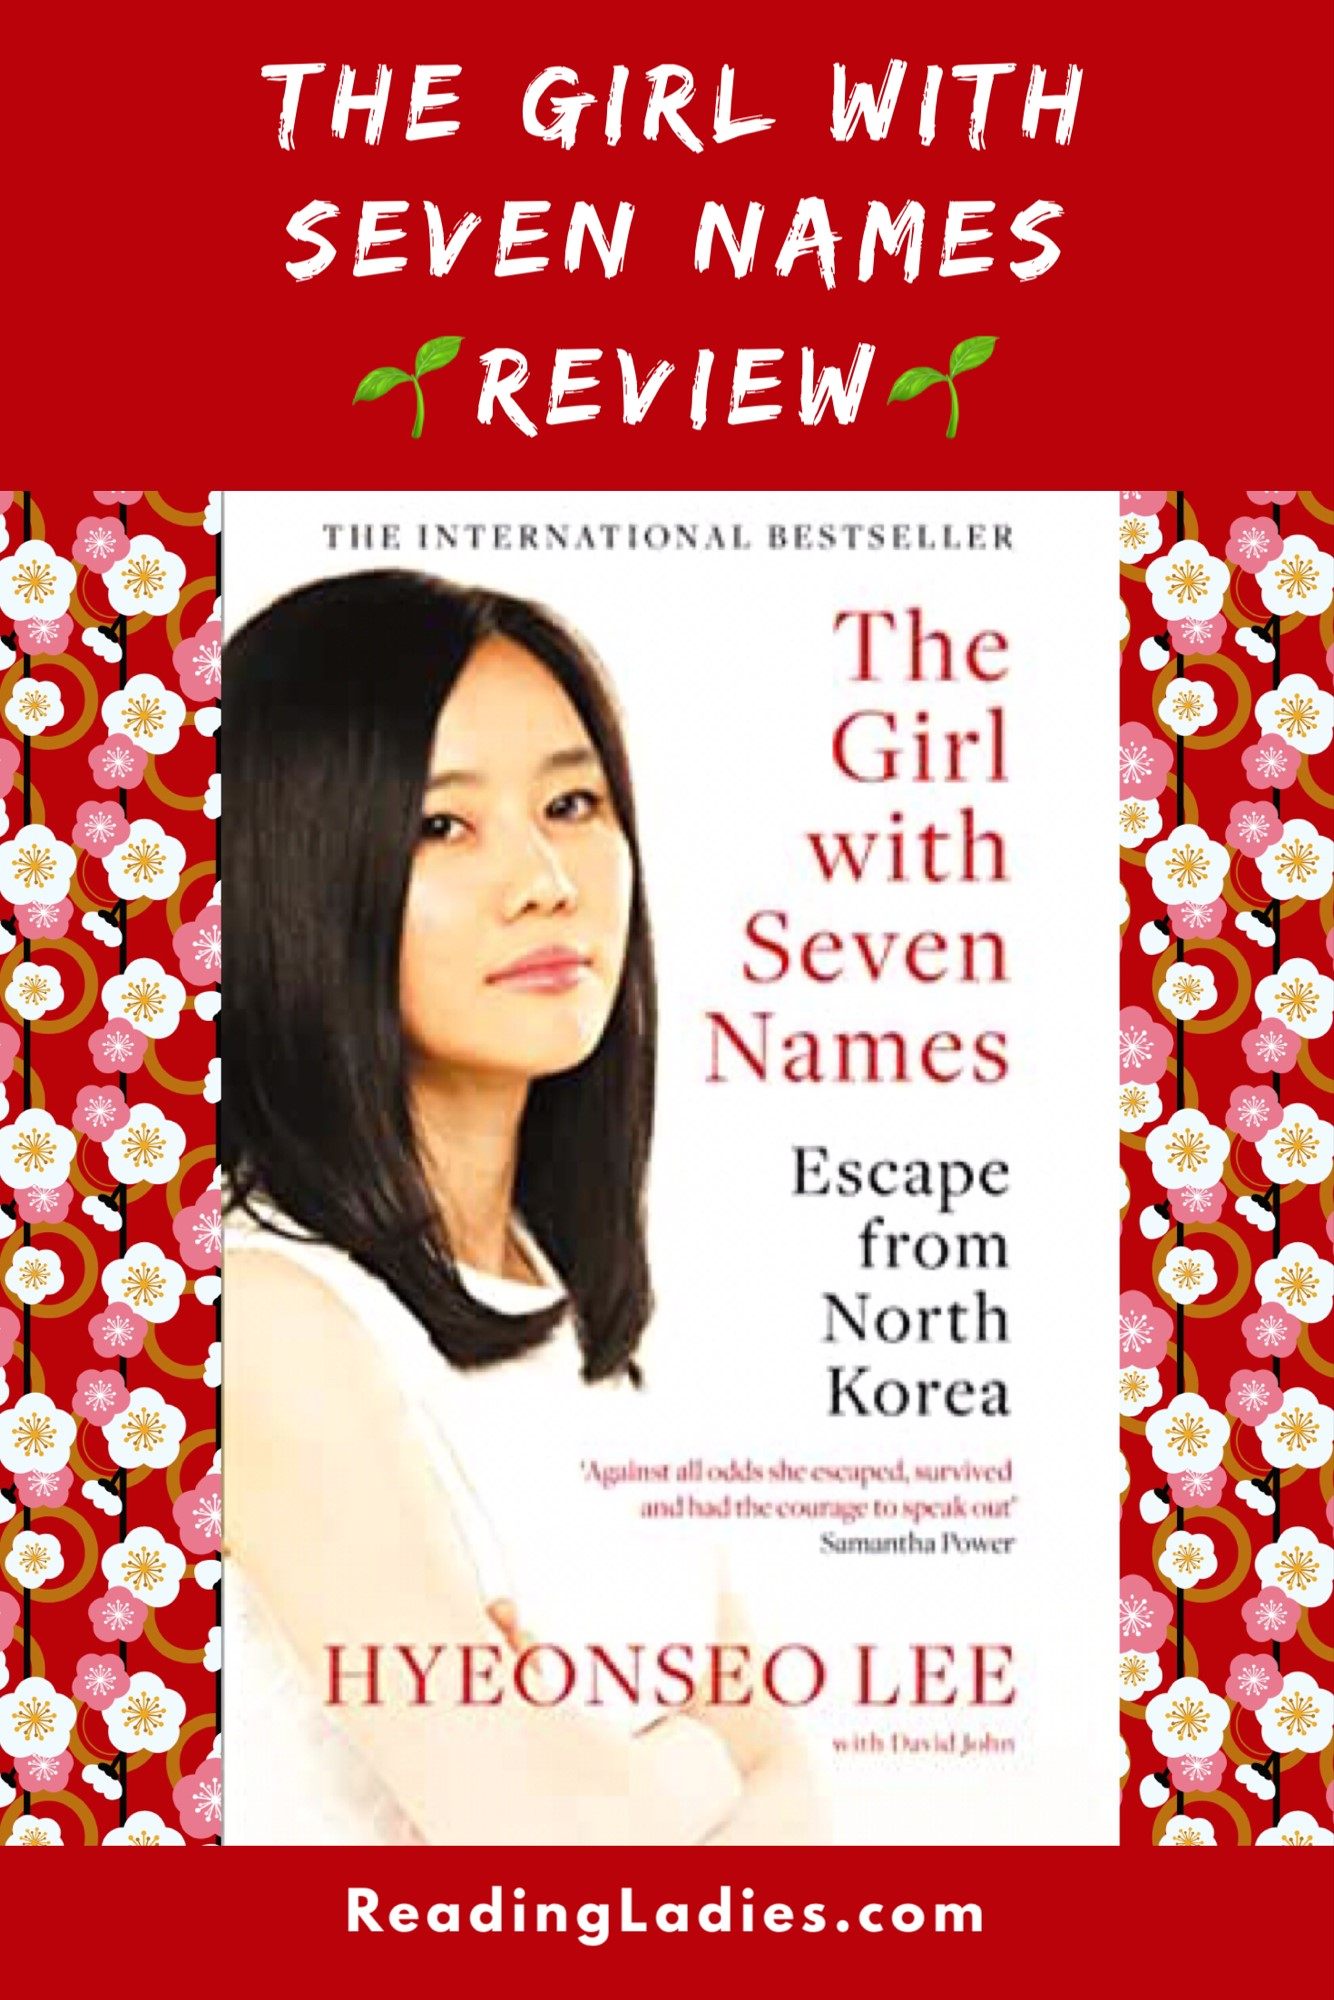 the girl with seven names review.jpg